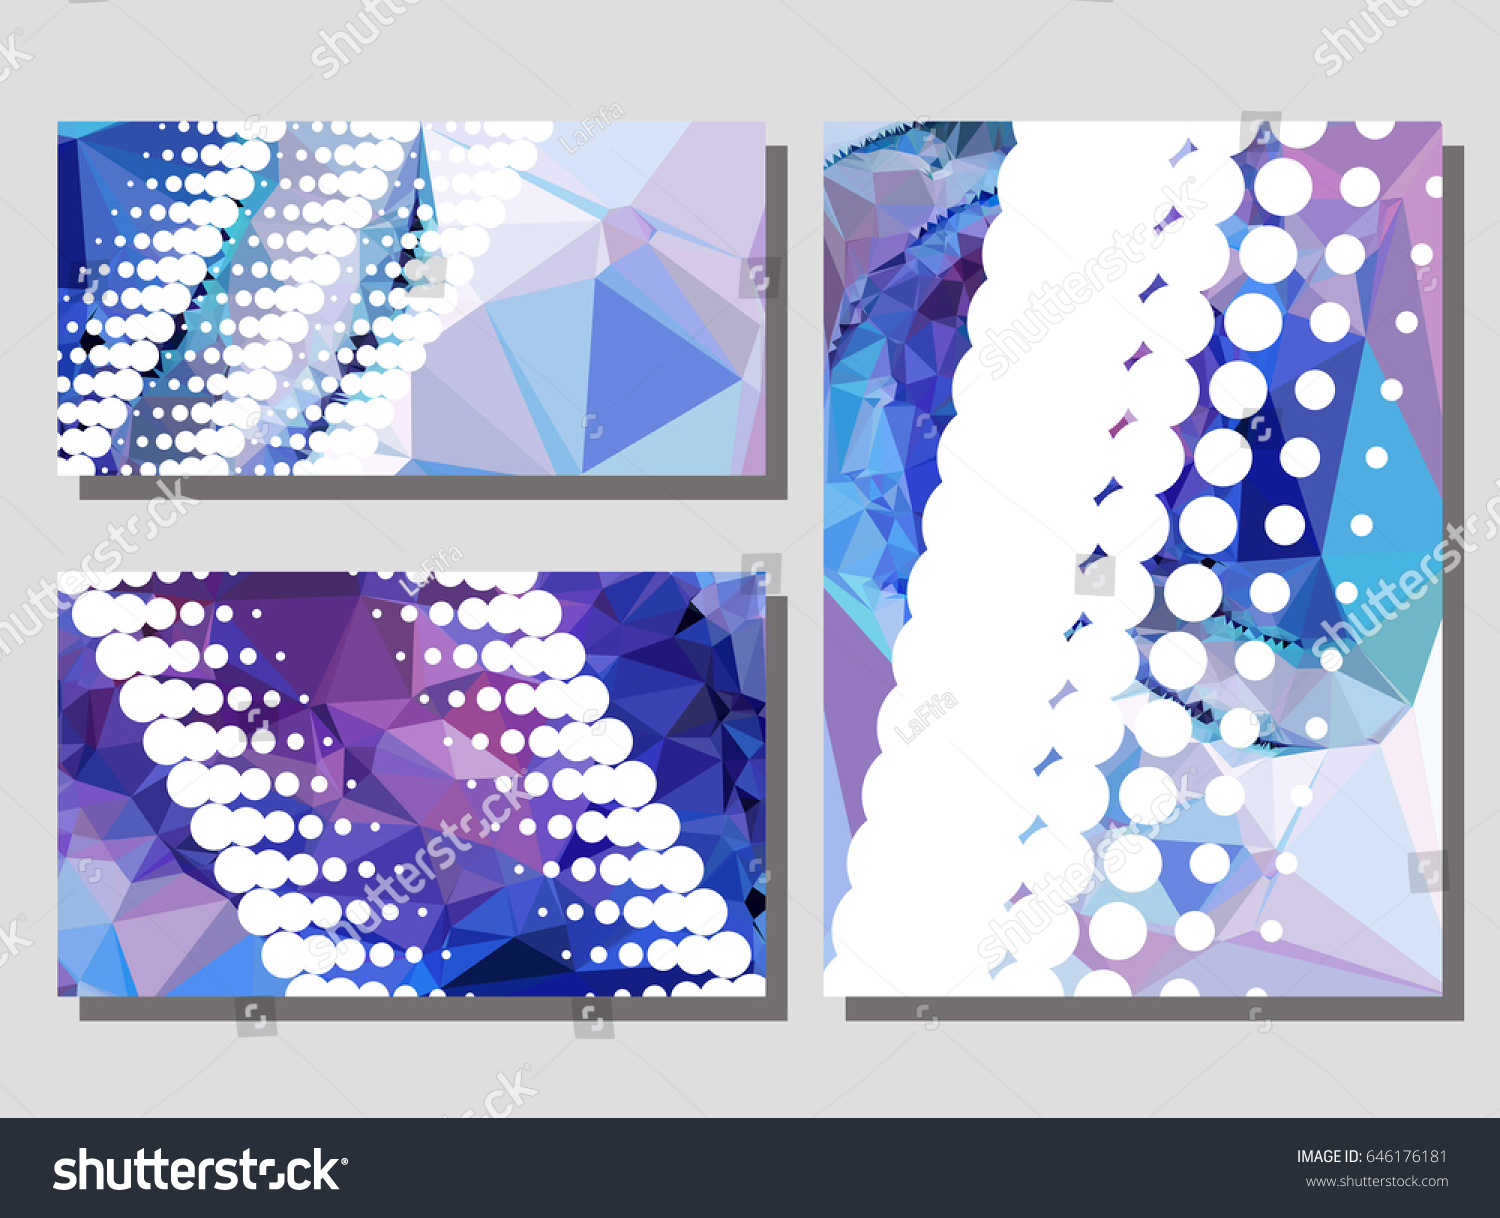 low poly background.html